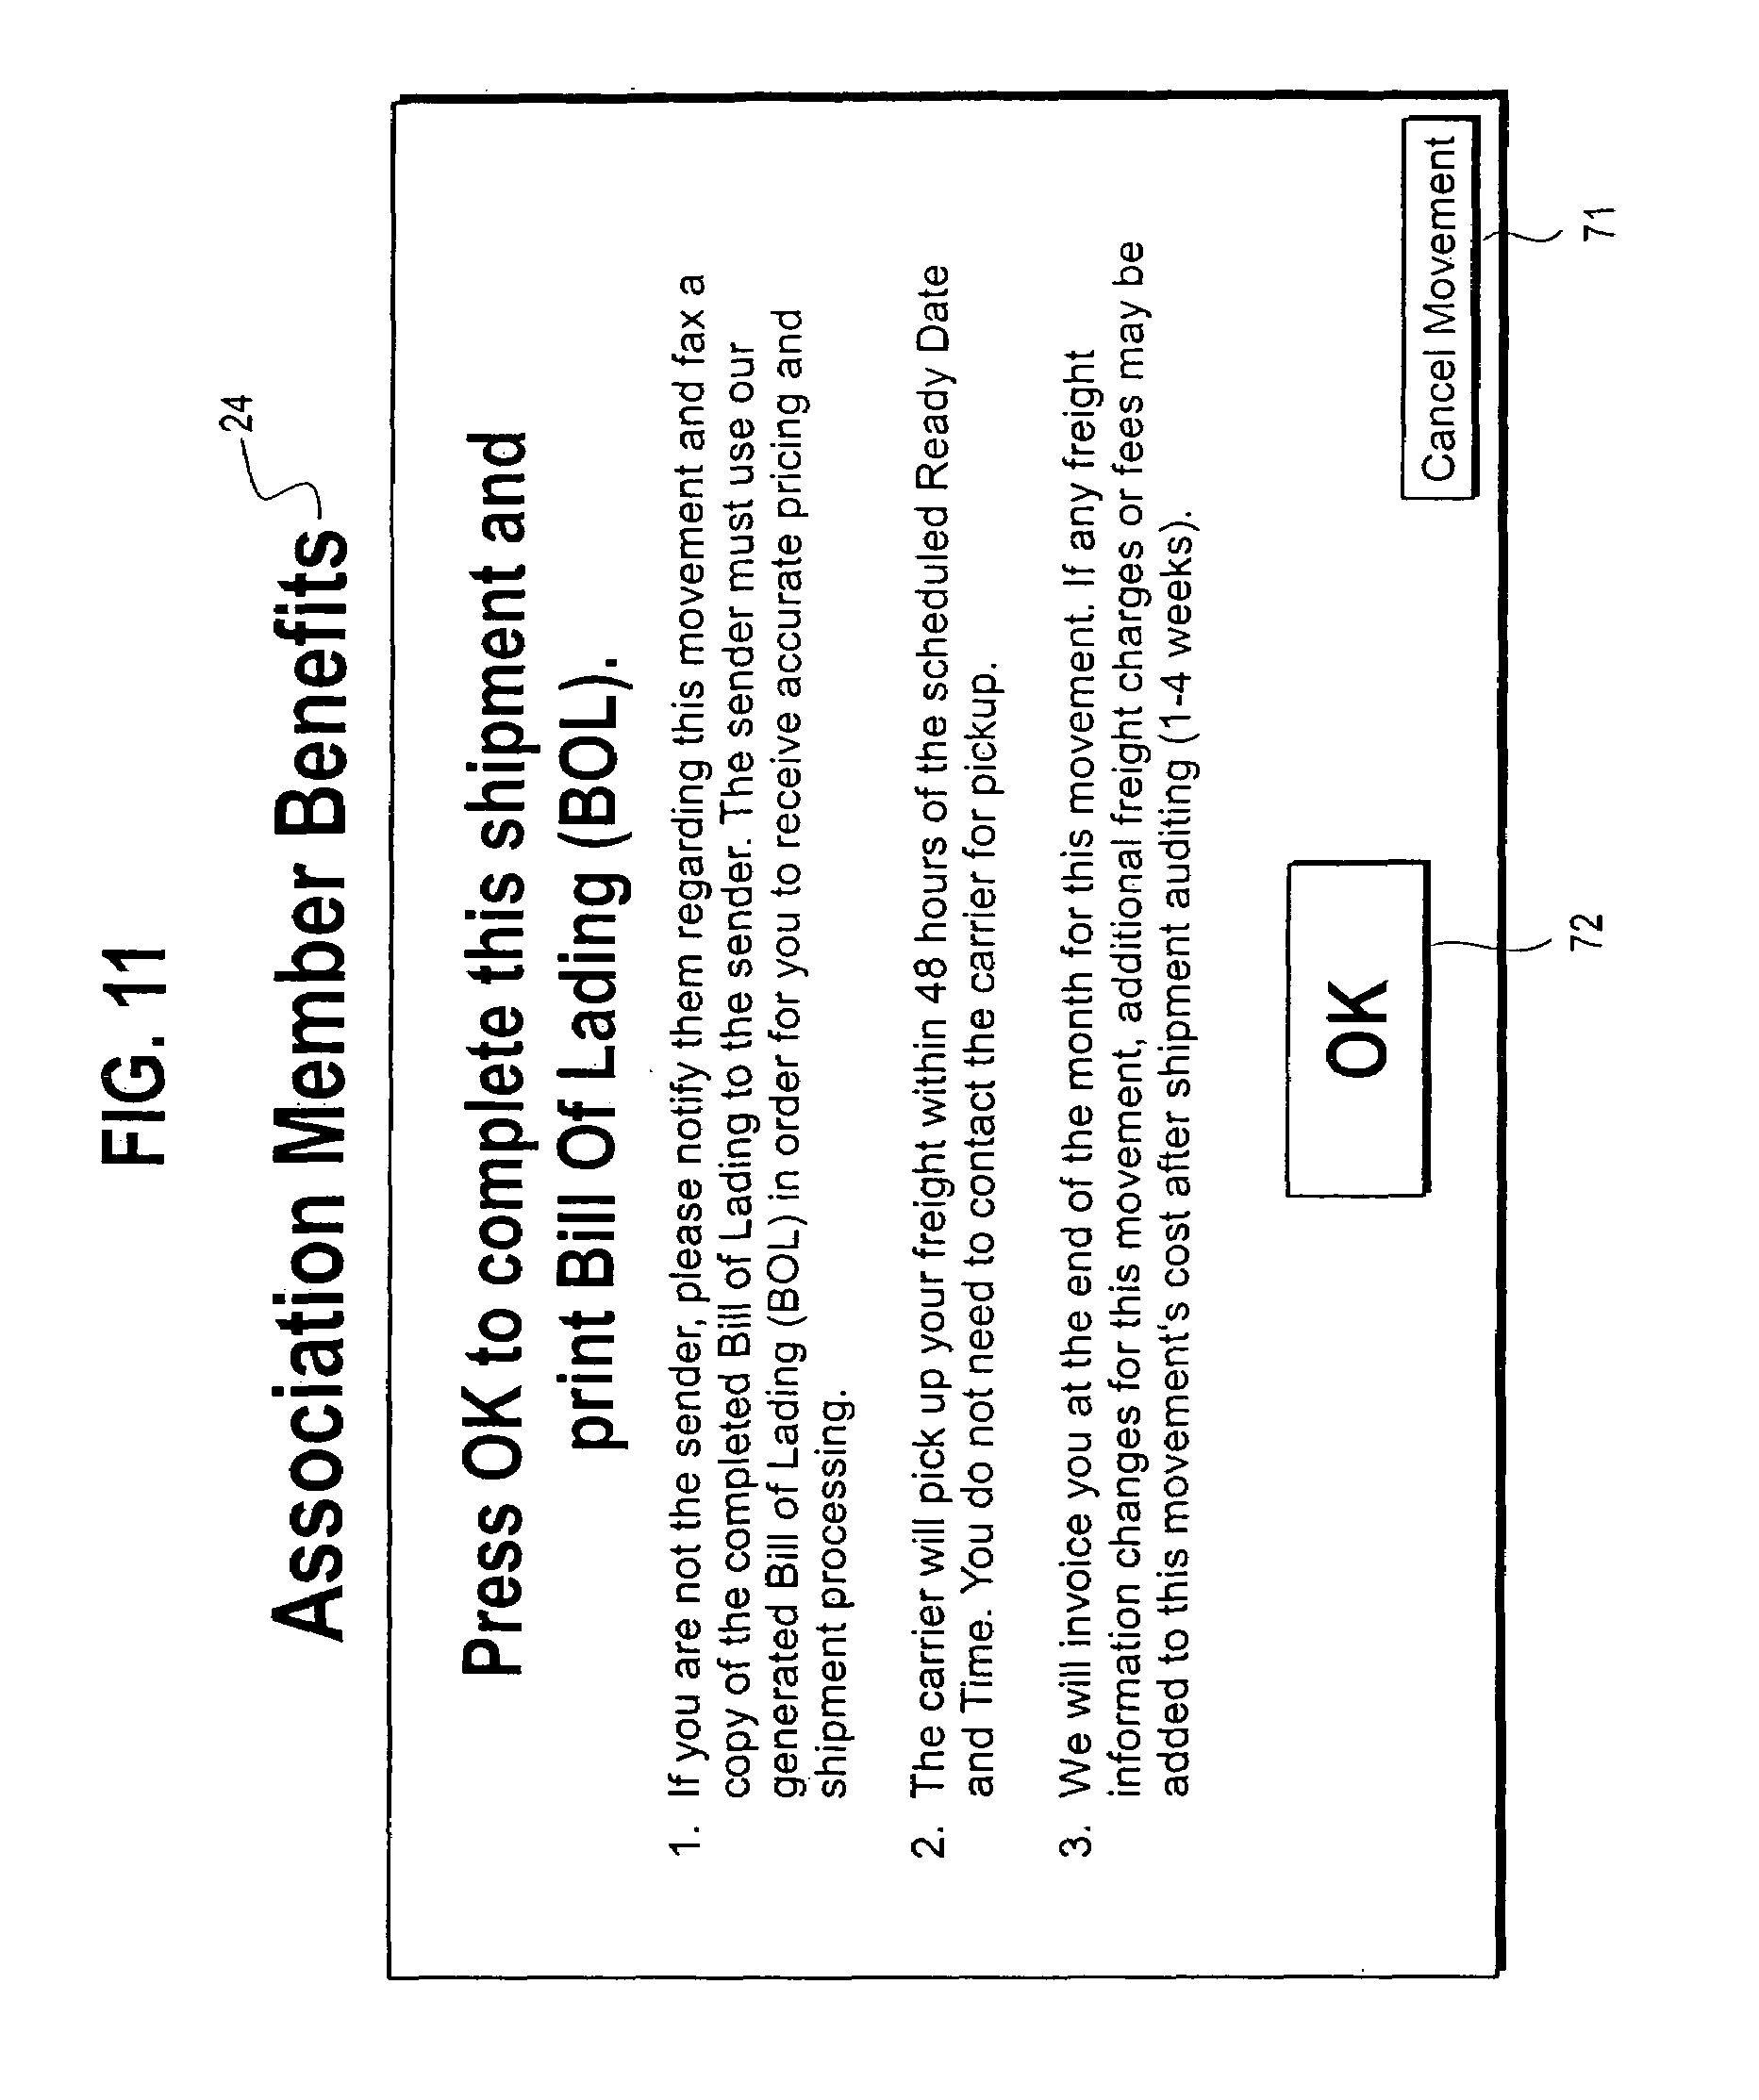 Invoices Quickbooks Patent Us  System And Method For Marketing Over Computer  How Do You Write An Invoice Excel with Invoice To Print Excel Patent Drawing Service Rendered Invoice Word